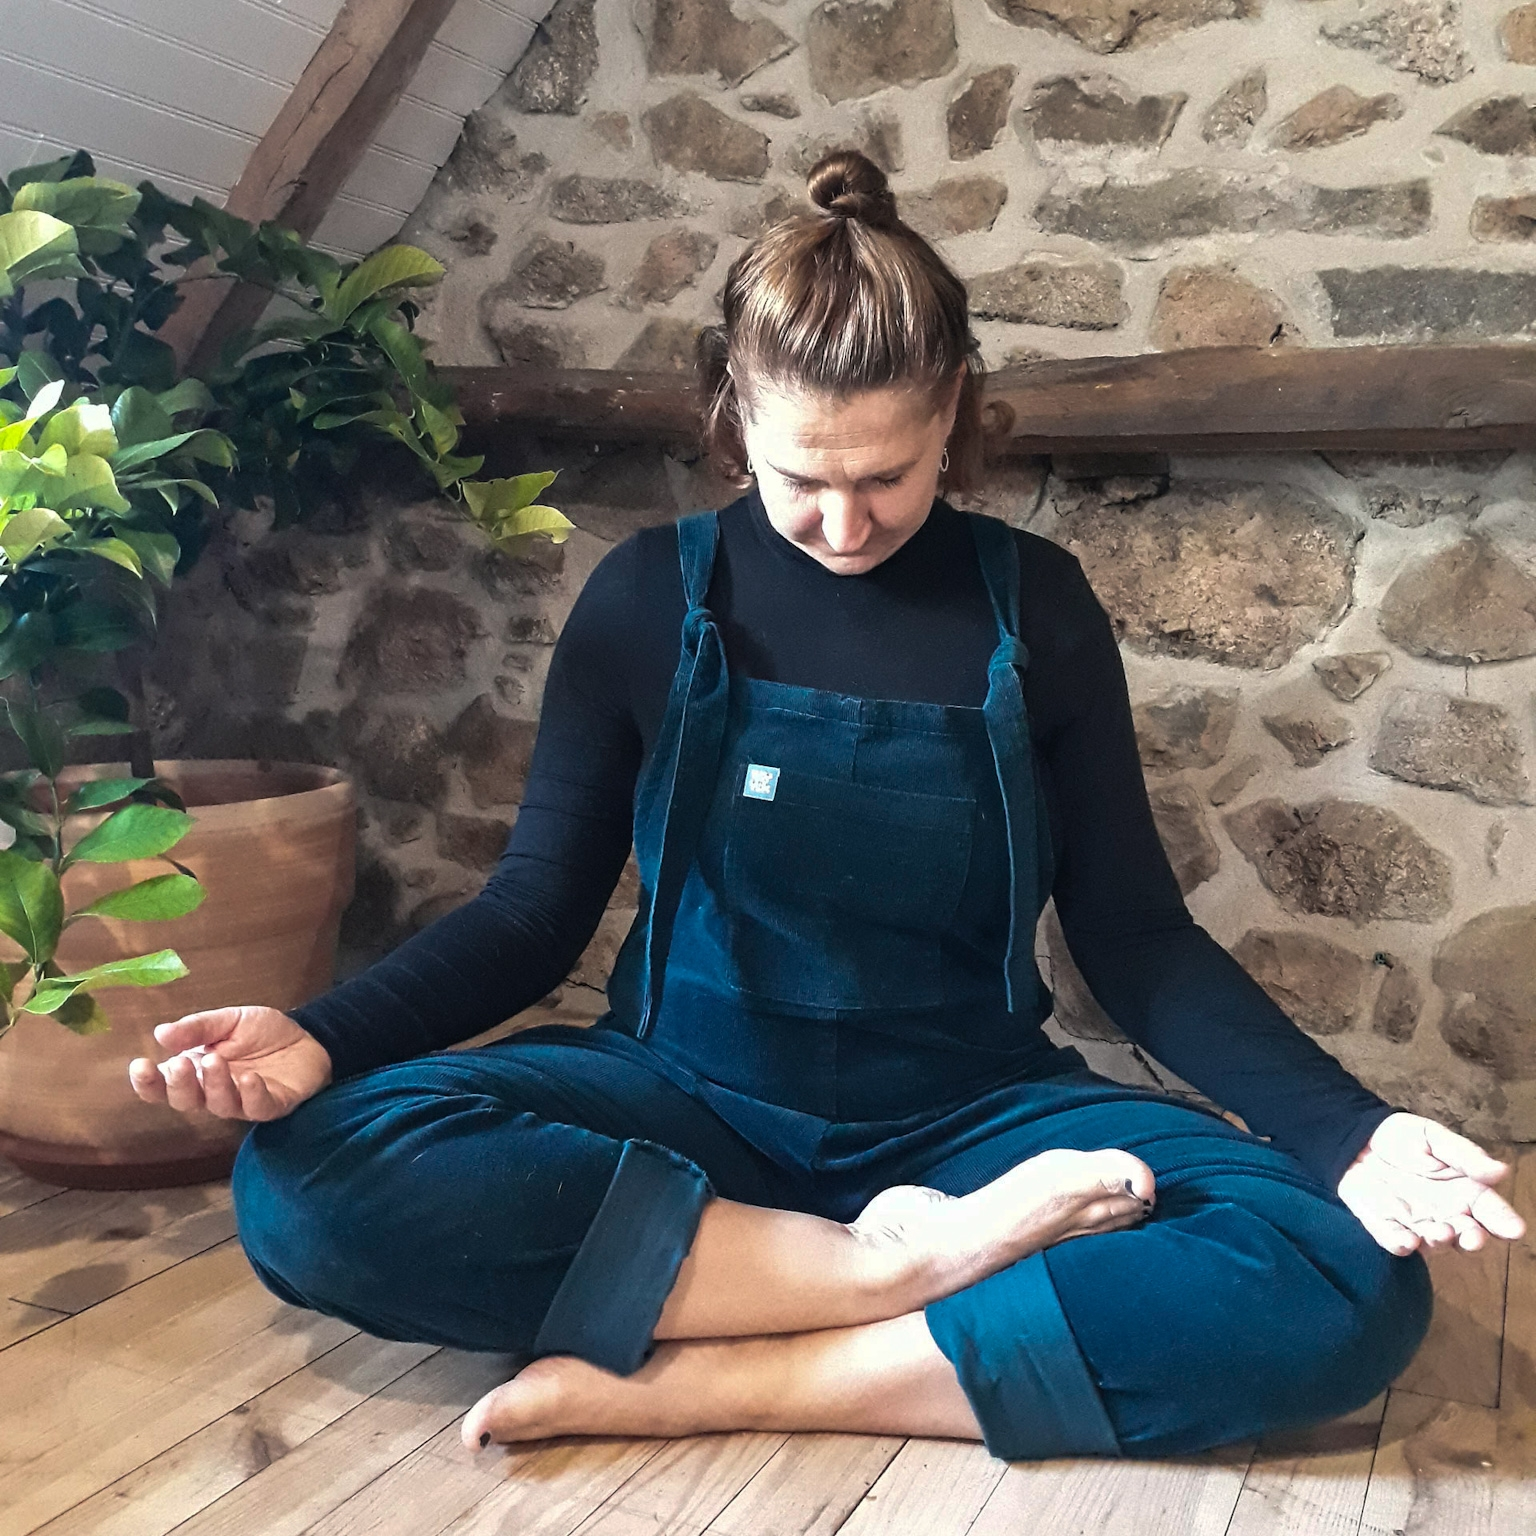 Relax the jaw, let the shoulders drop and take a full deep inhale. On your exhale descend your chin towards your chest and as you inhale come back to centre. -